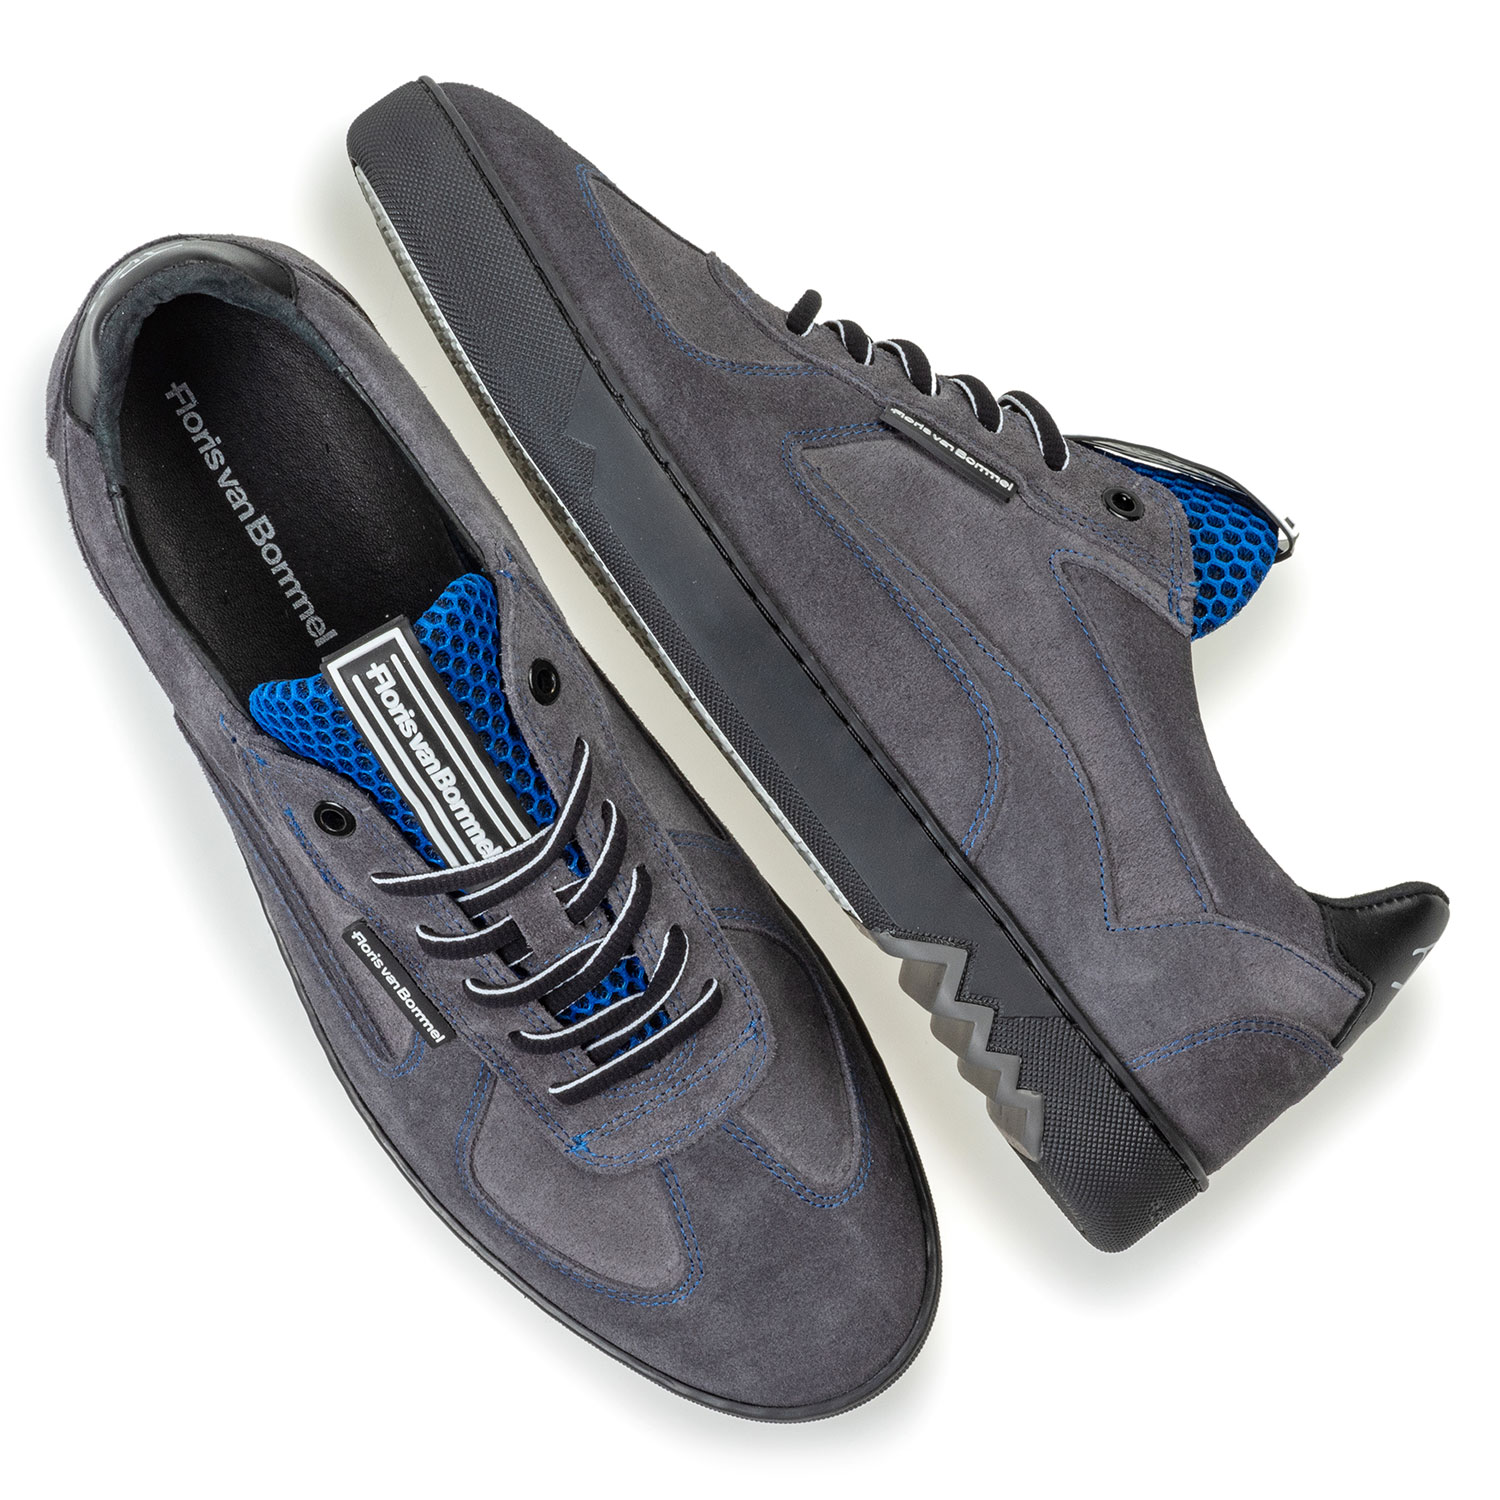 16342/45 - Sneaker grey suede leather